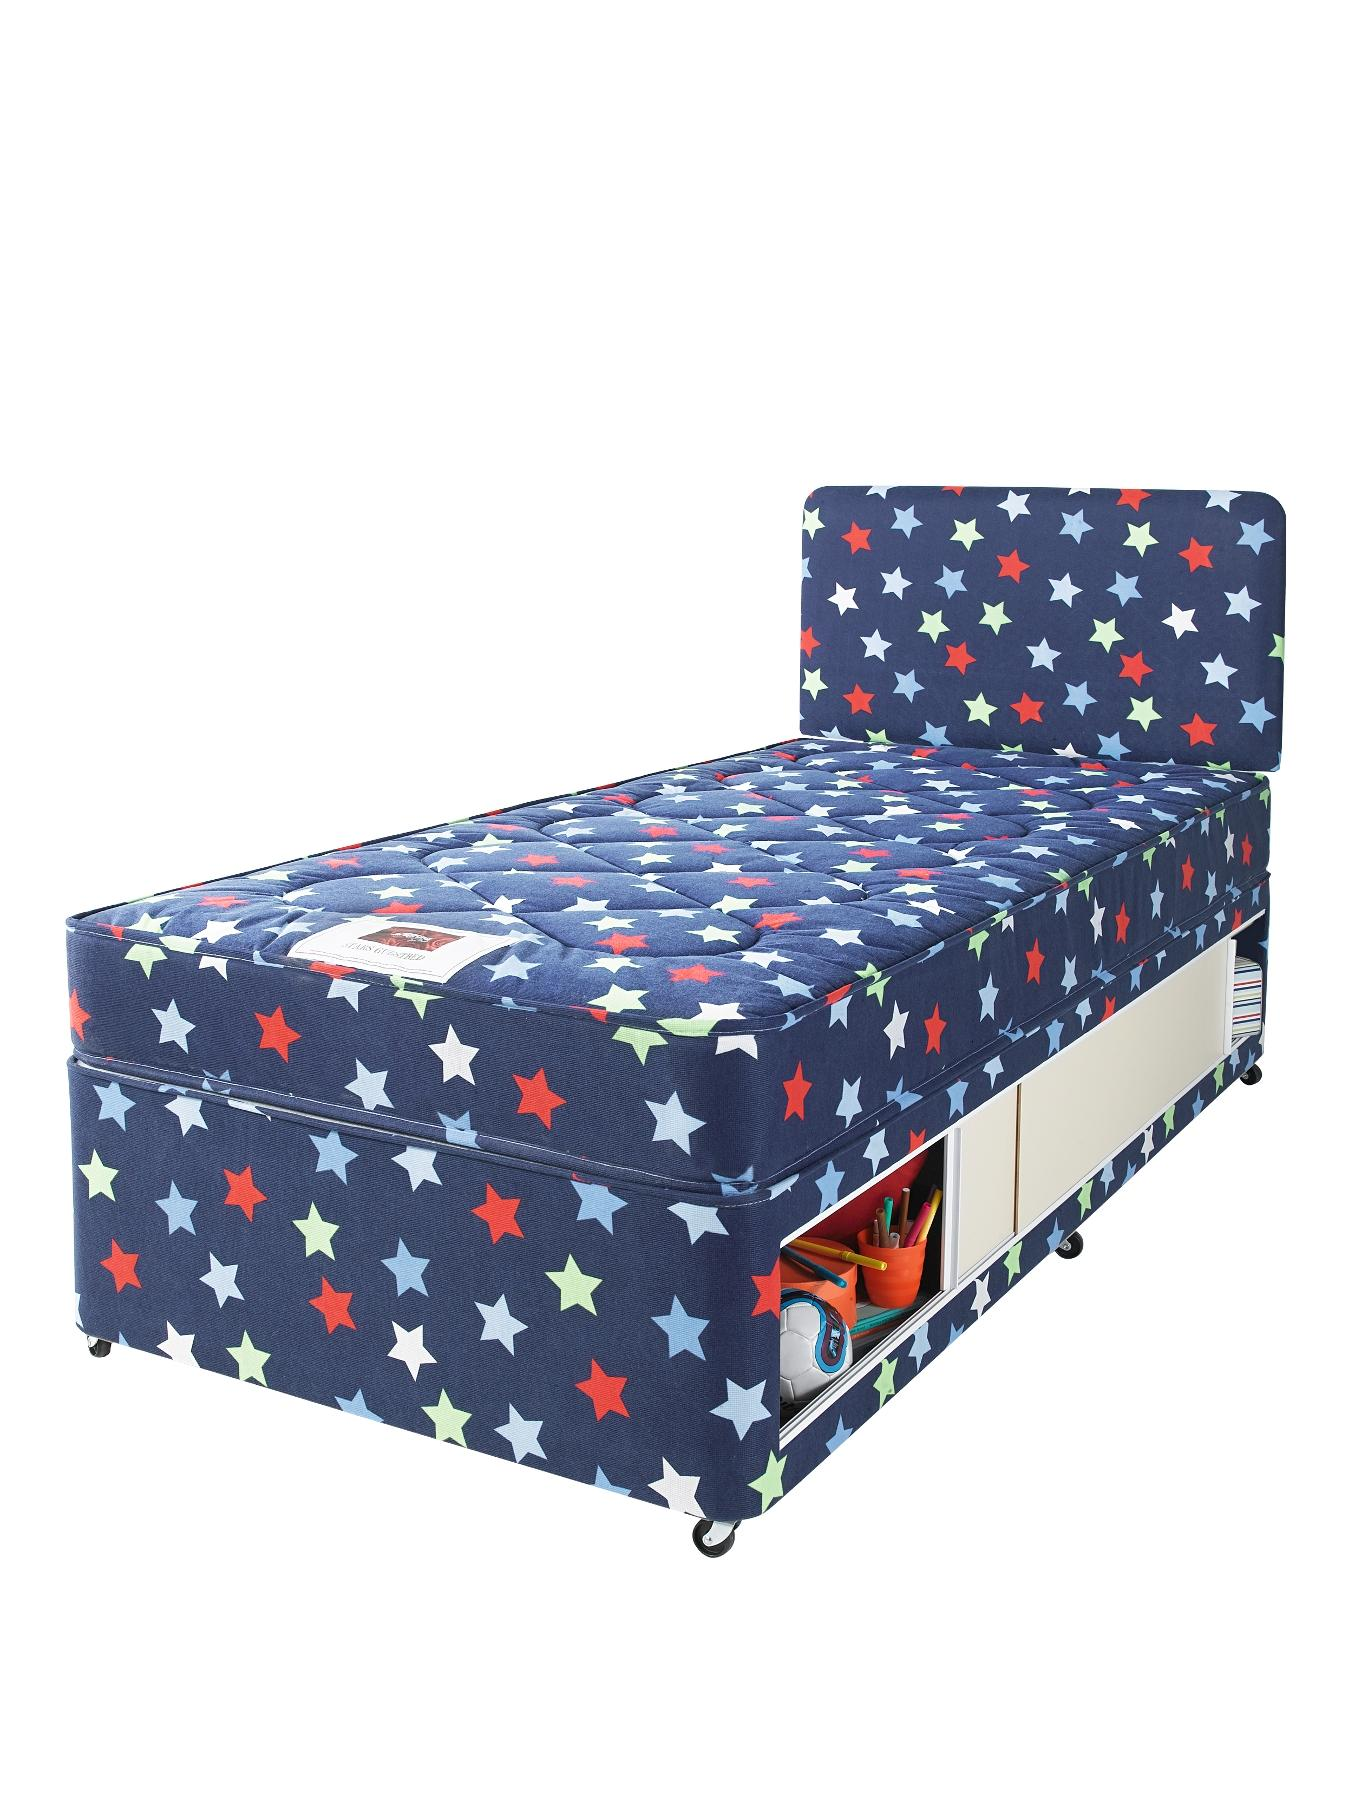 Airsprung Small Single Kids Storage Bed